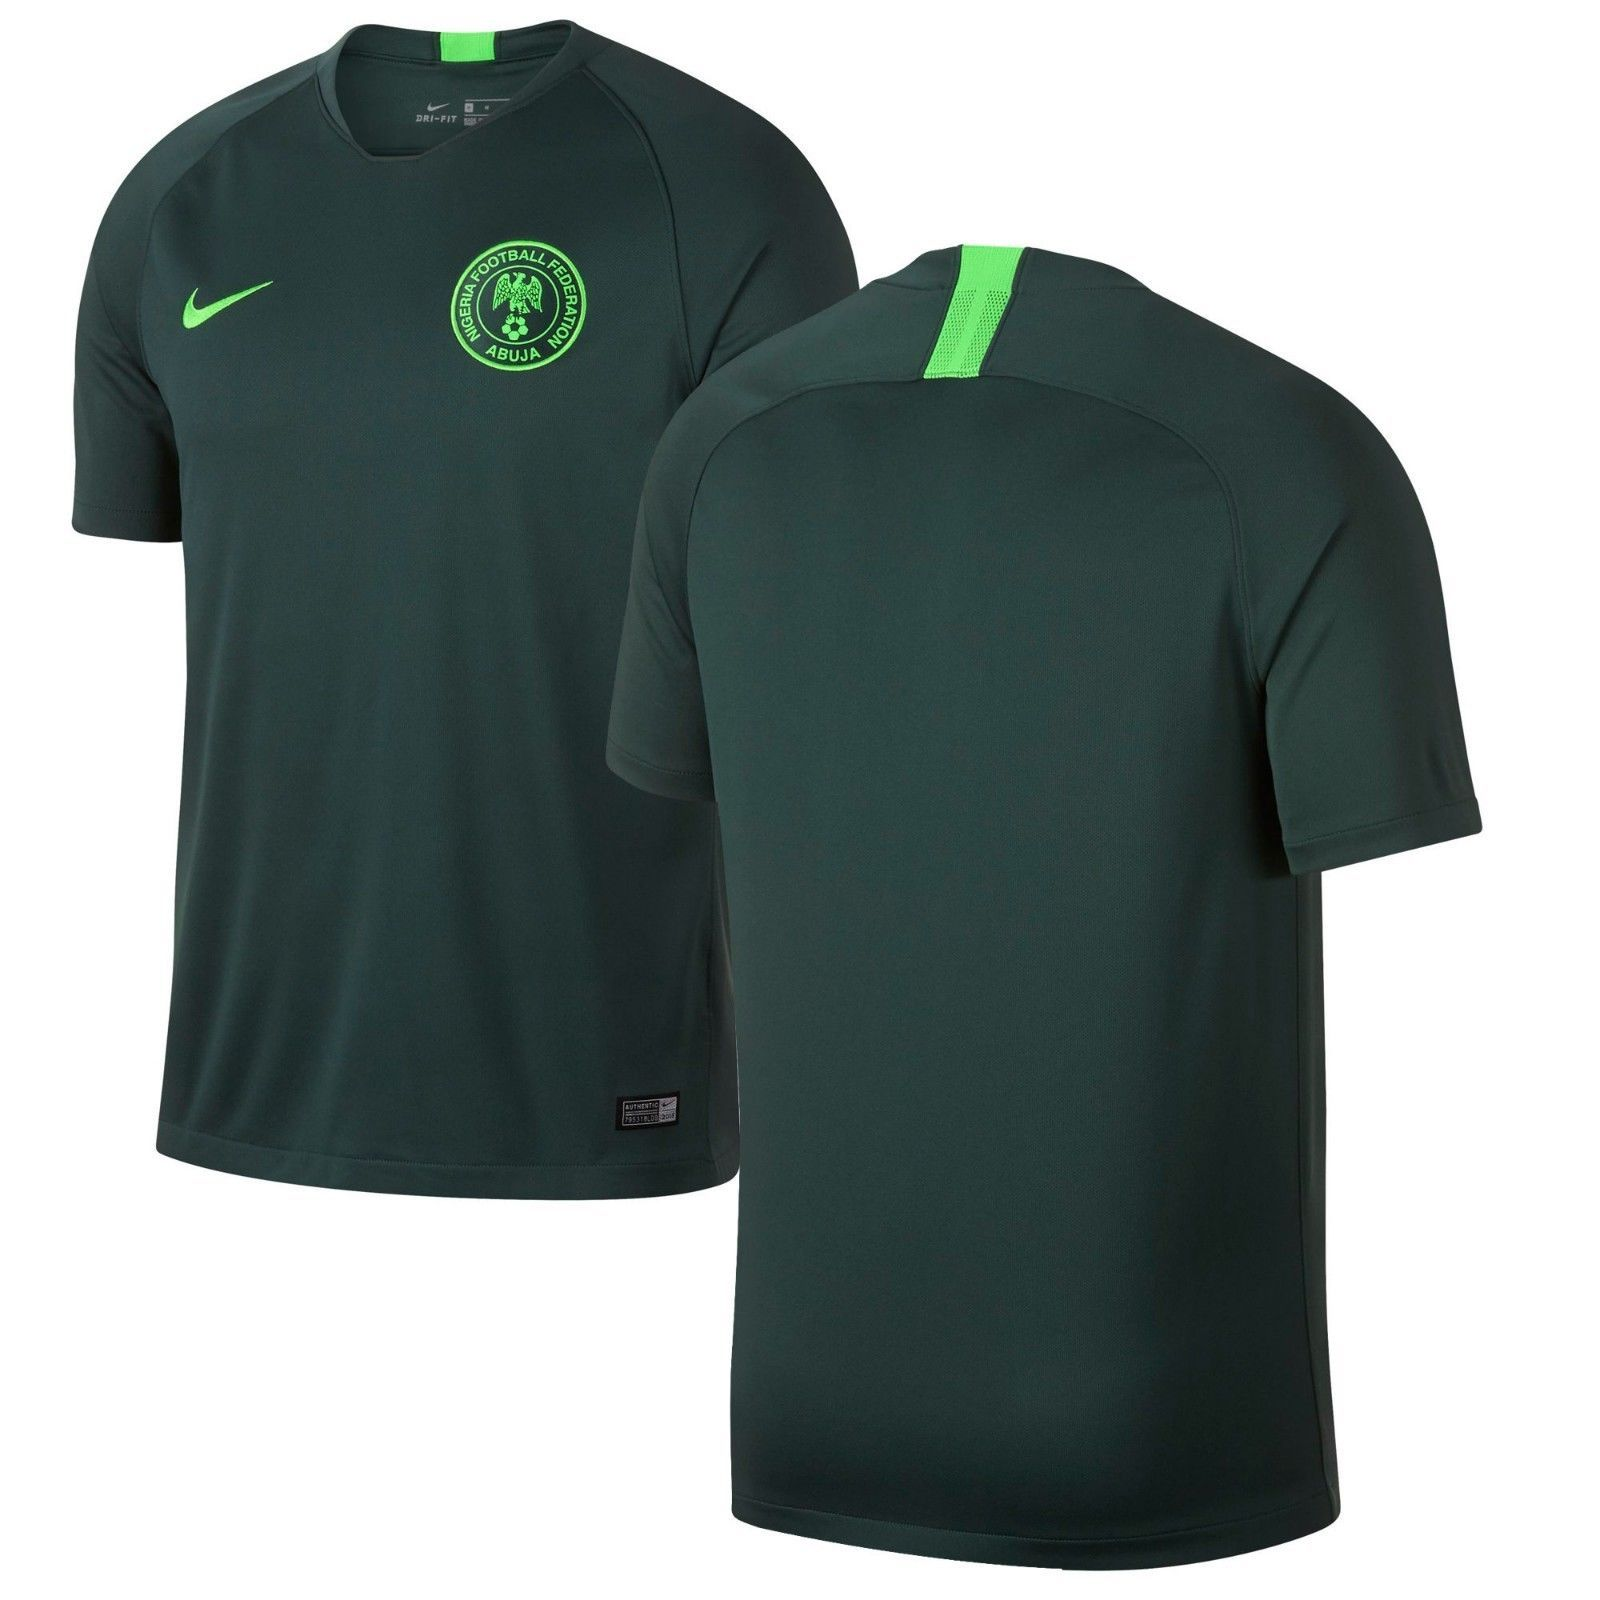 Authentic Limited Nike 2018 World Cup Nigeria National Team Stadium Away  Jersey Discount Price 198.98 Free 0f884a9b0